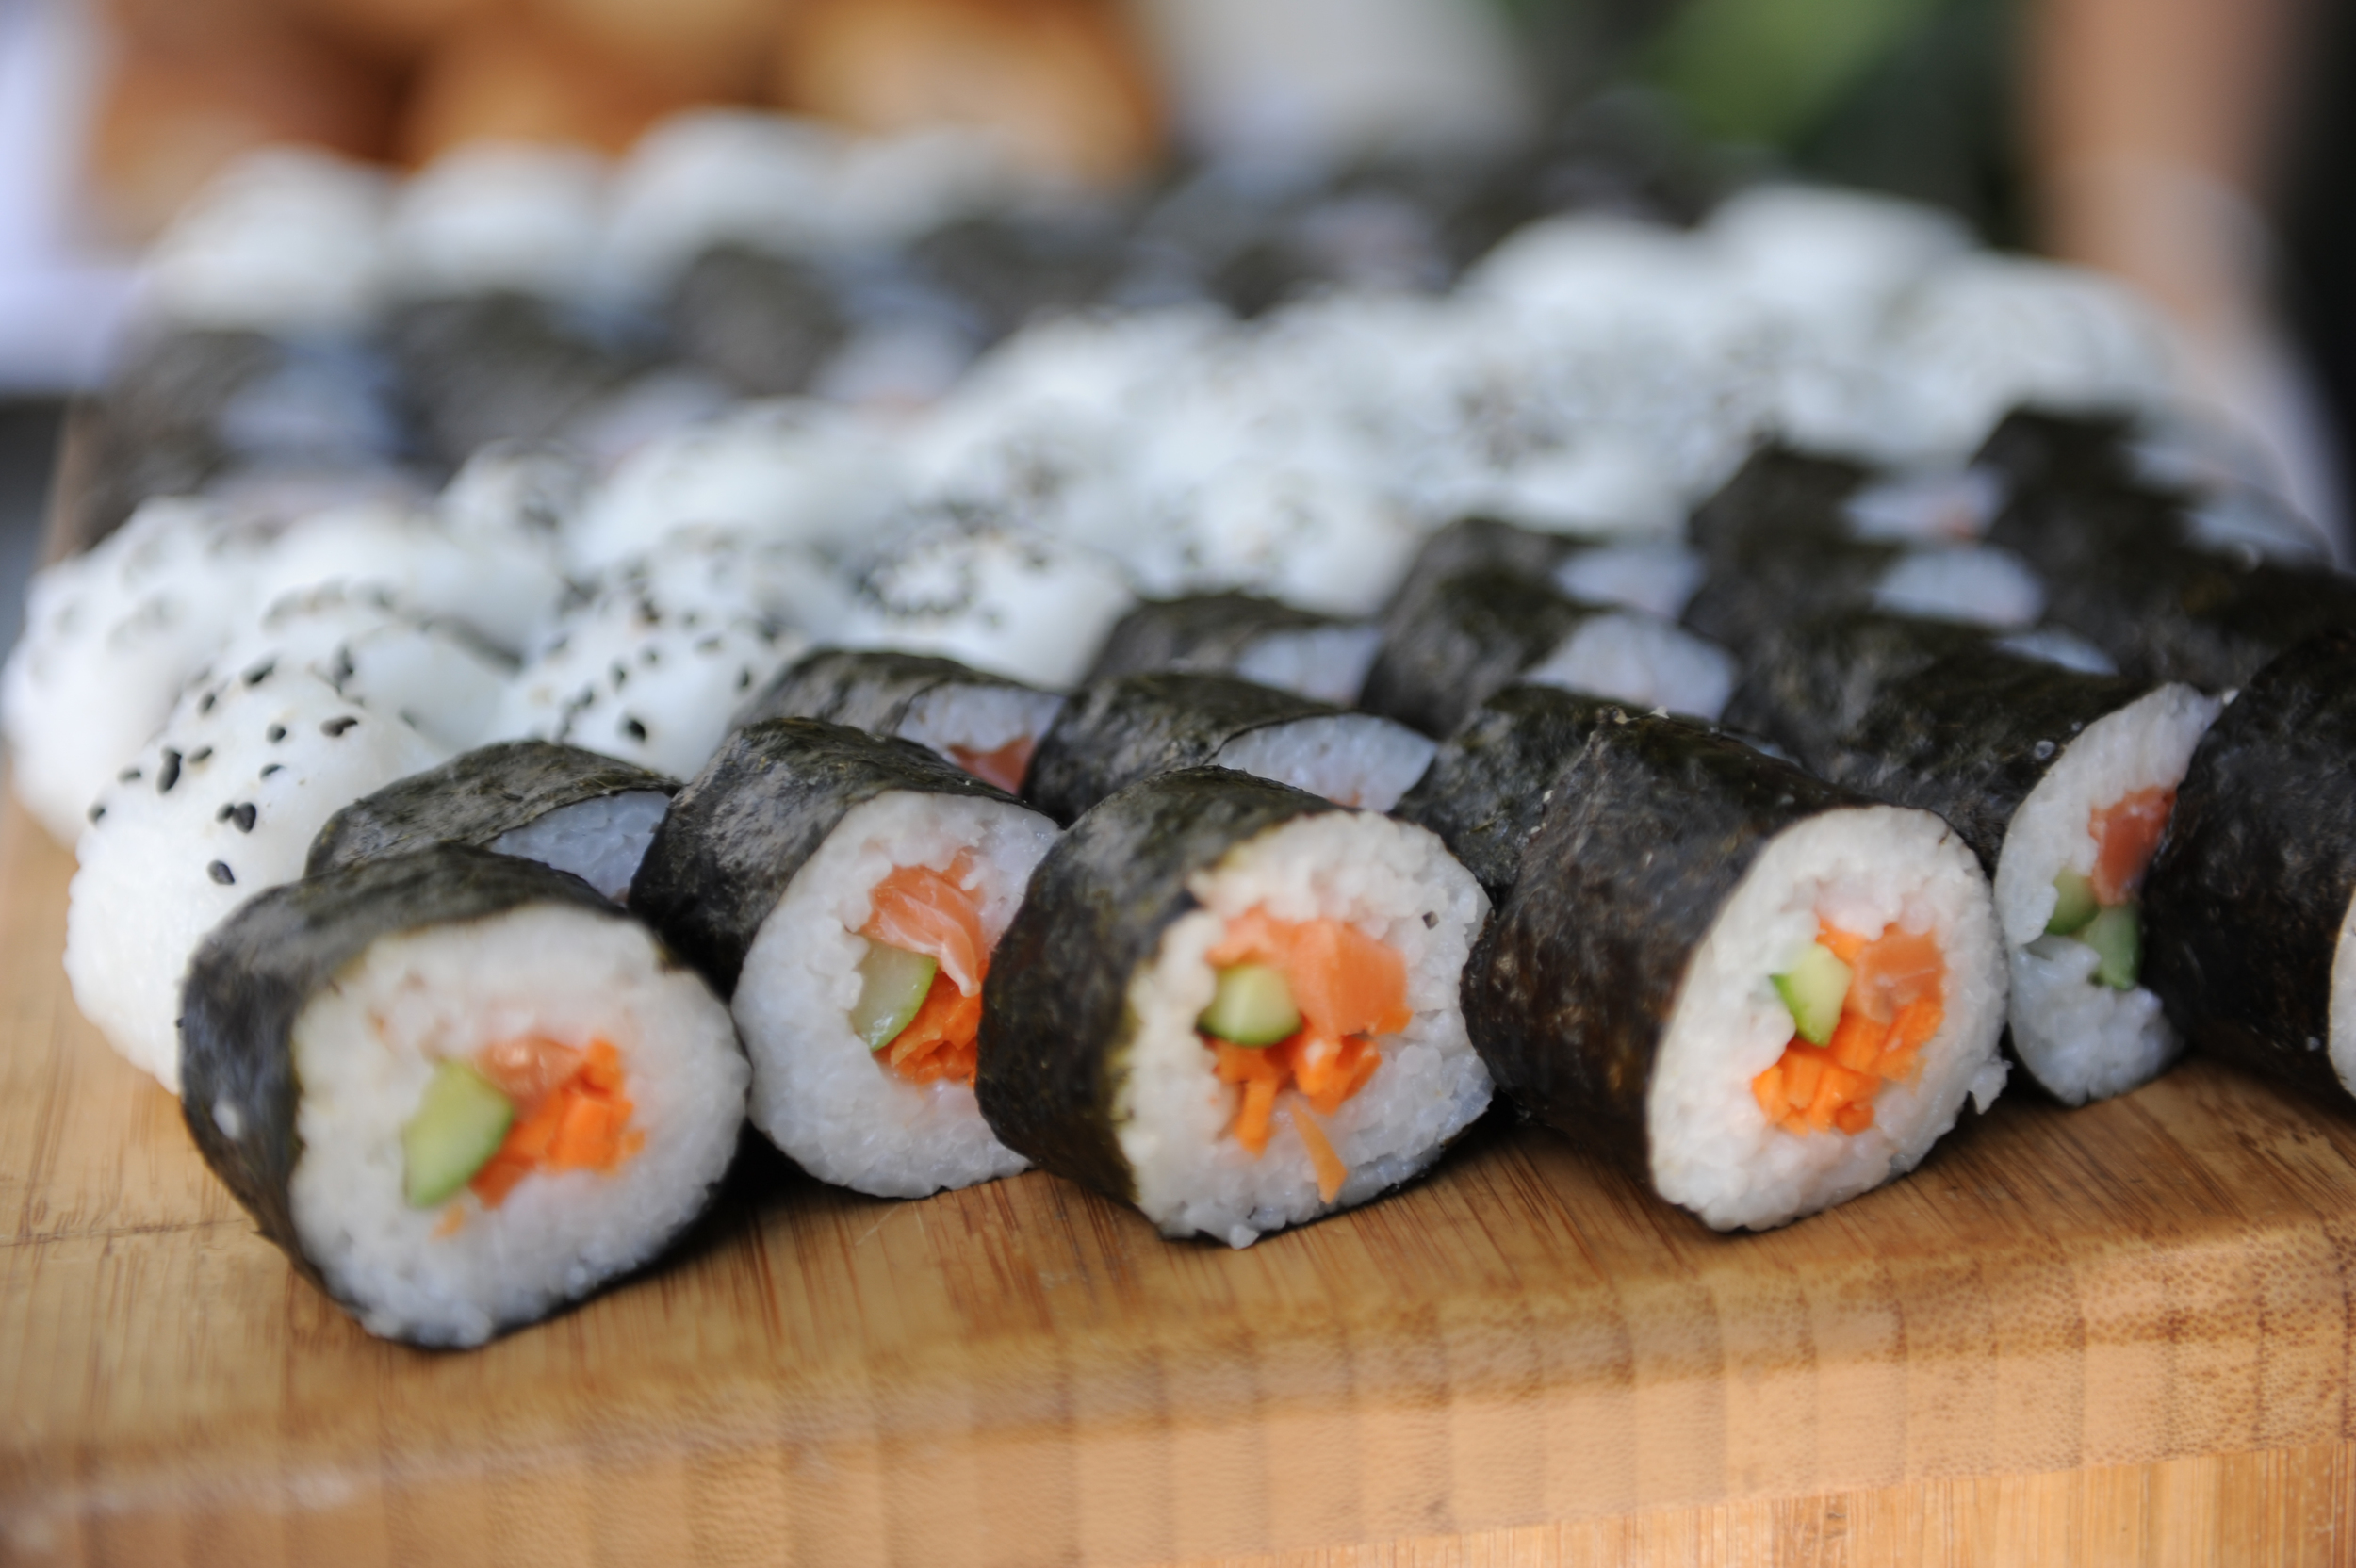 The study astonishingly found some people's blood sugar level rose more from sushi than icecream